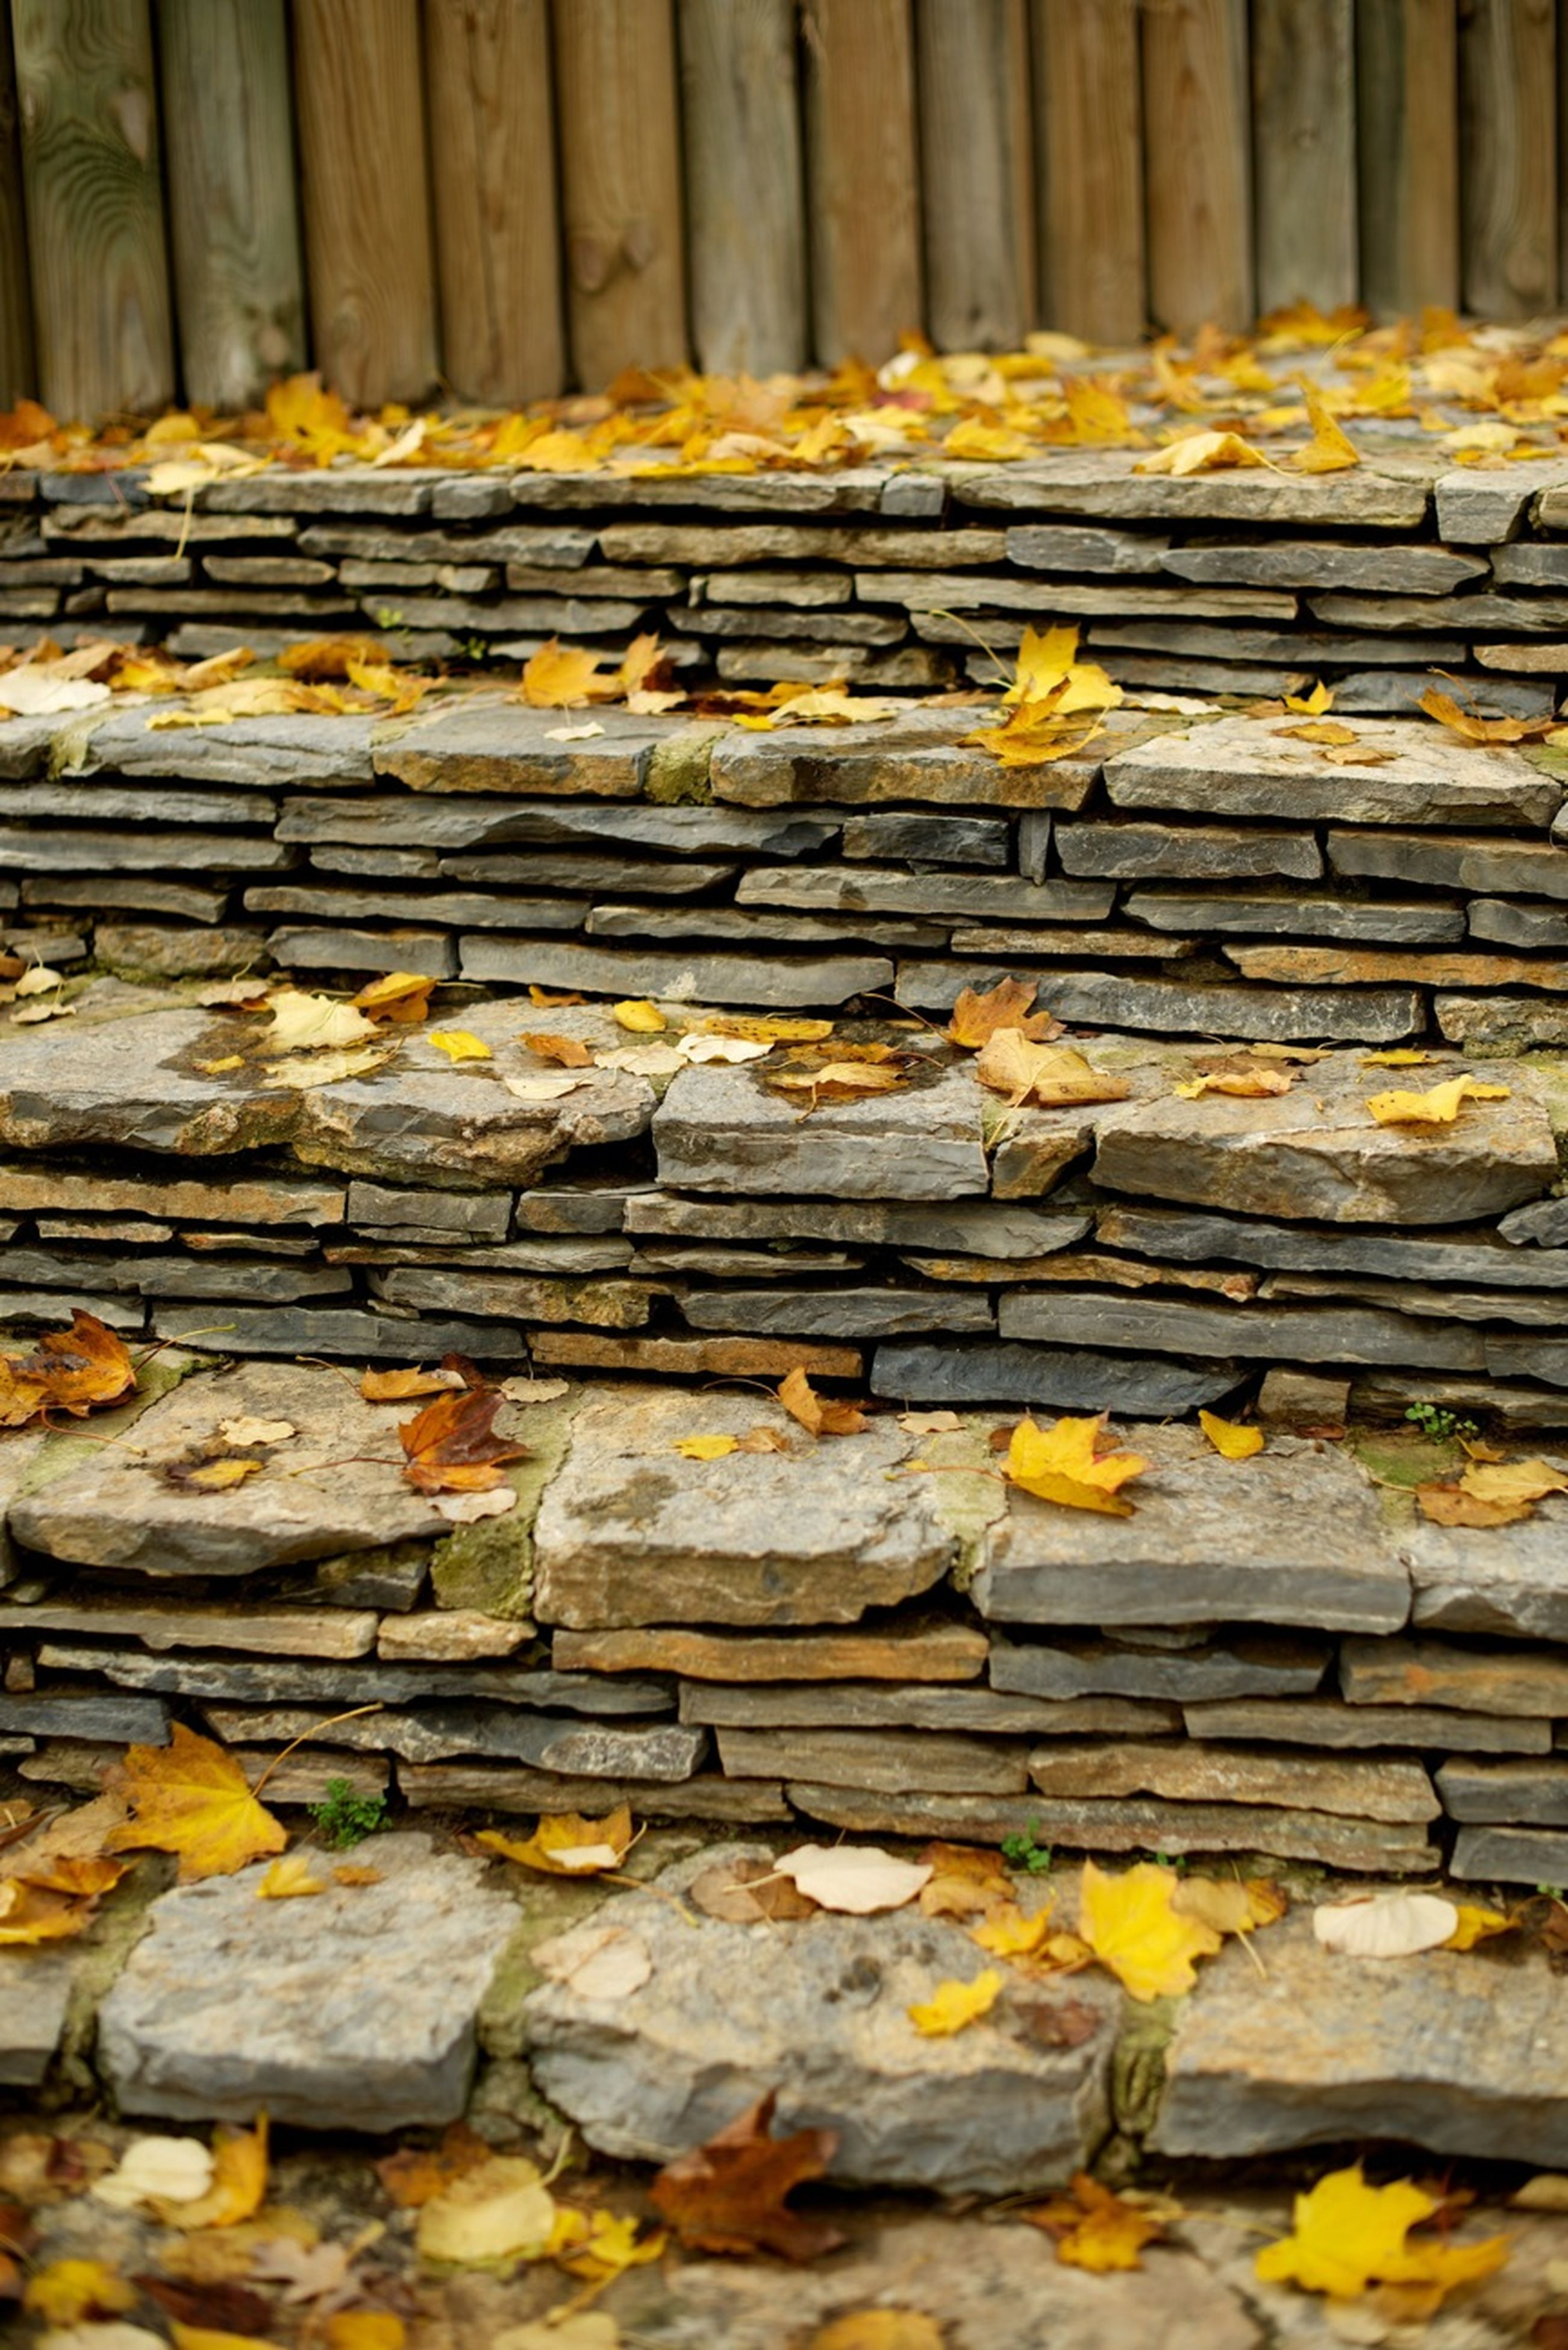 wood - material, full frame, backgrounds, textured, wooden, autumn, yellow, plank, wood, pattern, close-up, leaf, outdoors, surface level, dry, falling, fallen, change, day, steps